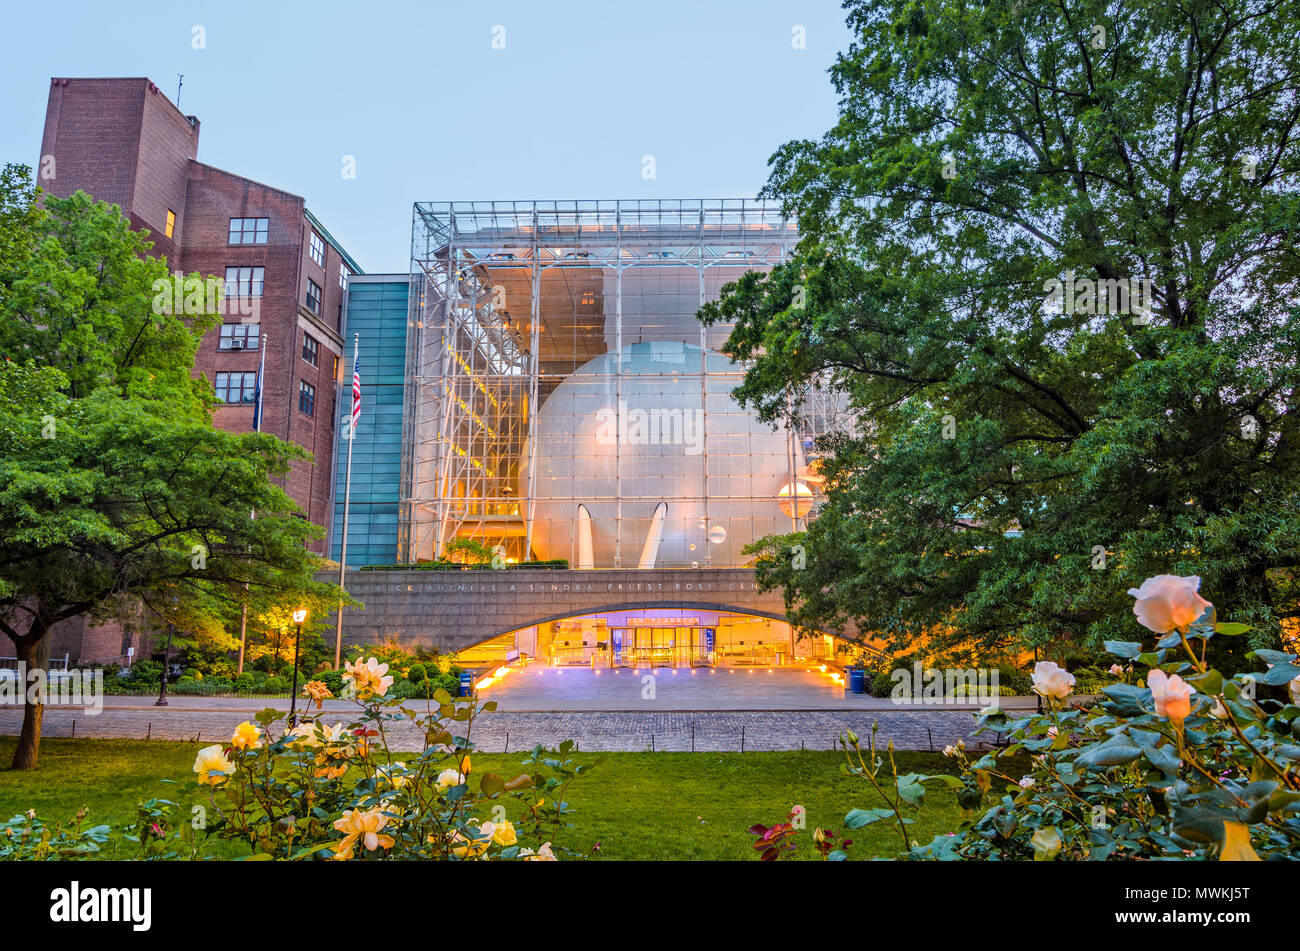 NEW YORK CITY - MAY 13, 2012: The Hayden Planetarium, part of the American Museum of Natural History, at dusk. - Stock Image